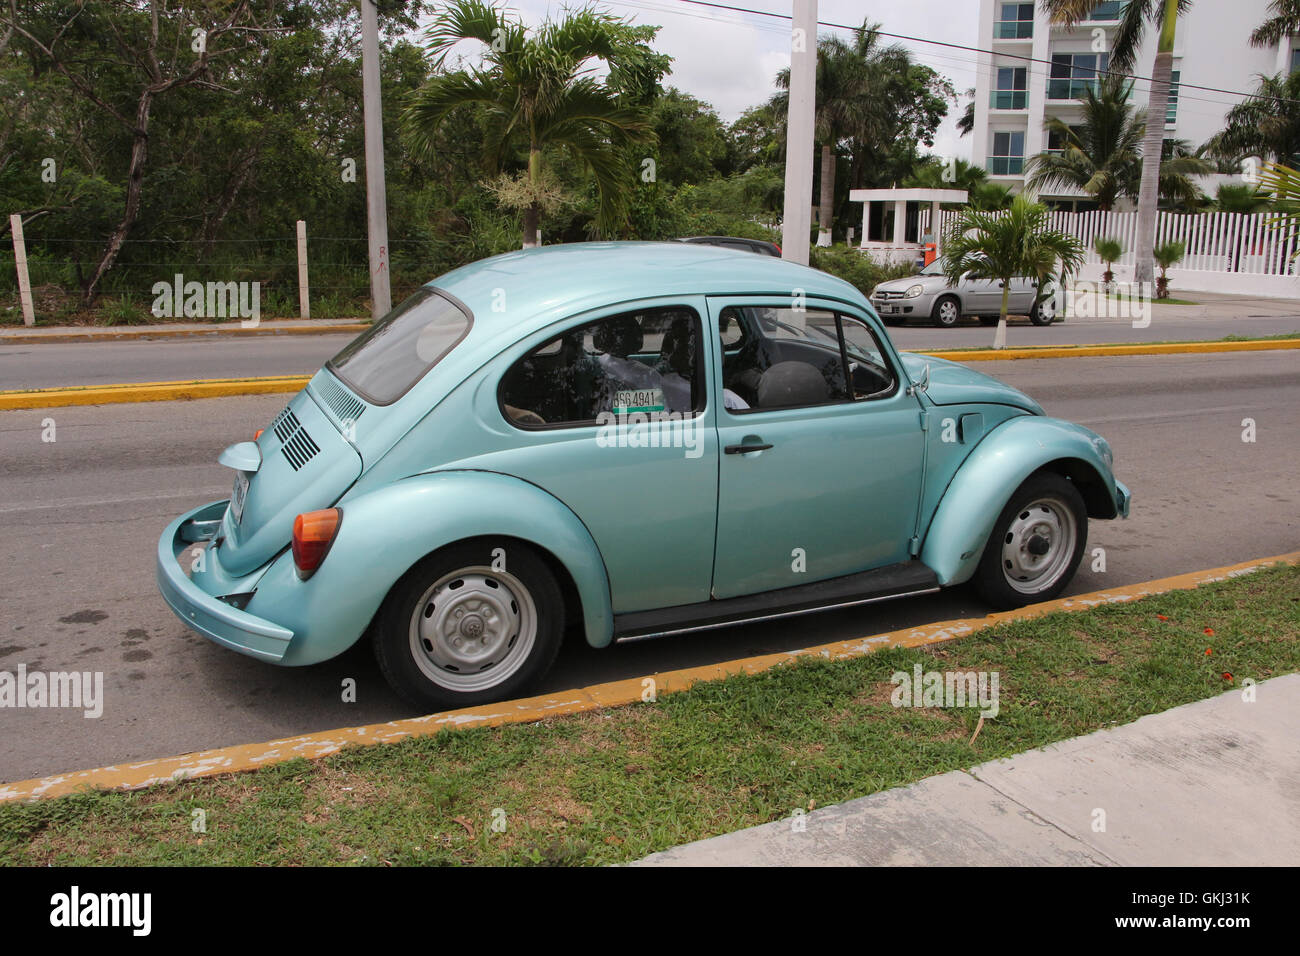 Punch Buggy Volkswagen >> Volkswagen, Mexico, punch buggies, Punch buggy,punch car, punch Stock Photo: 115338207 - Alamy